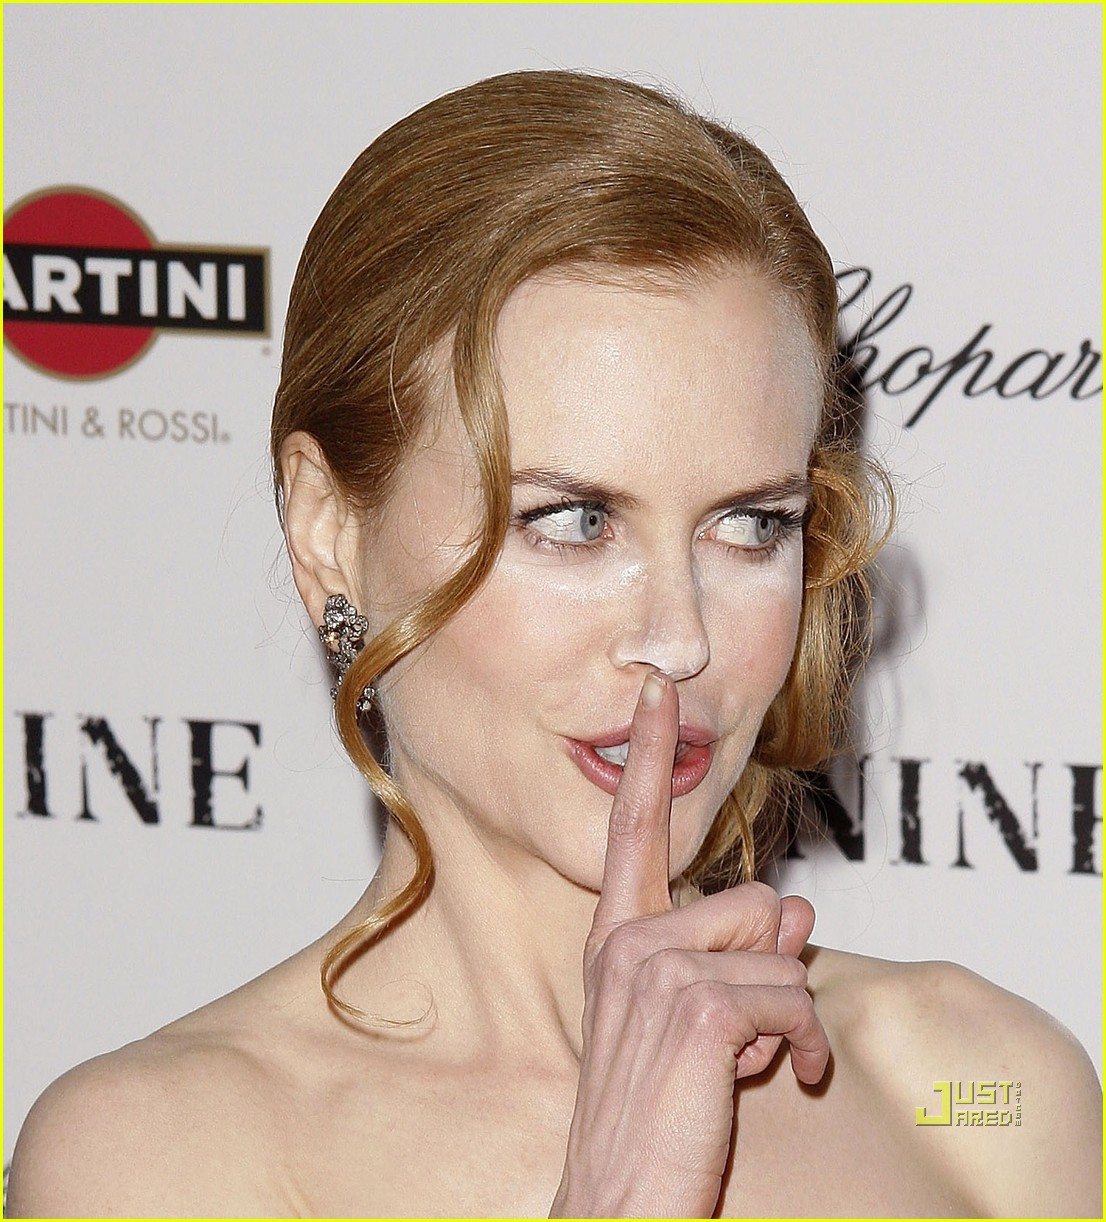 Nicole Kidman Powder Makeup Malfunction Photo 2402223